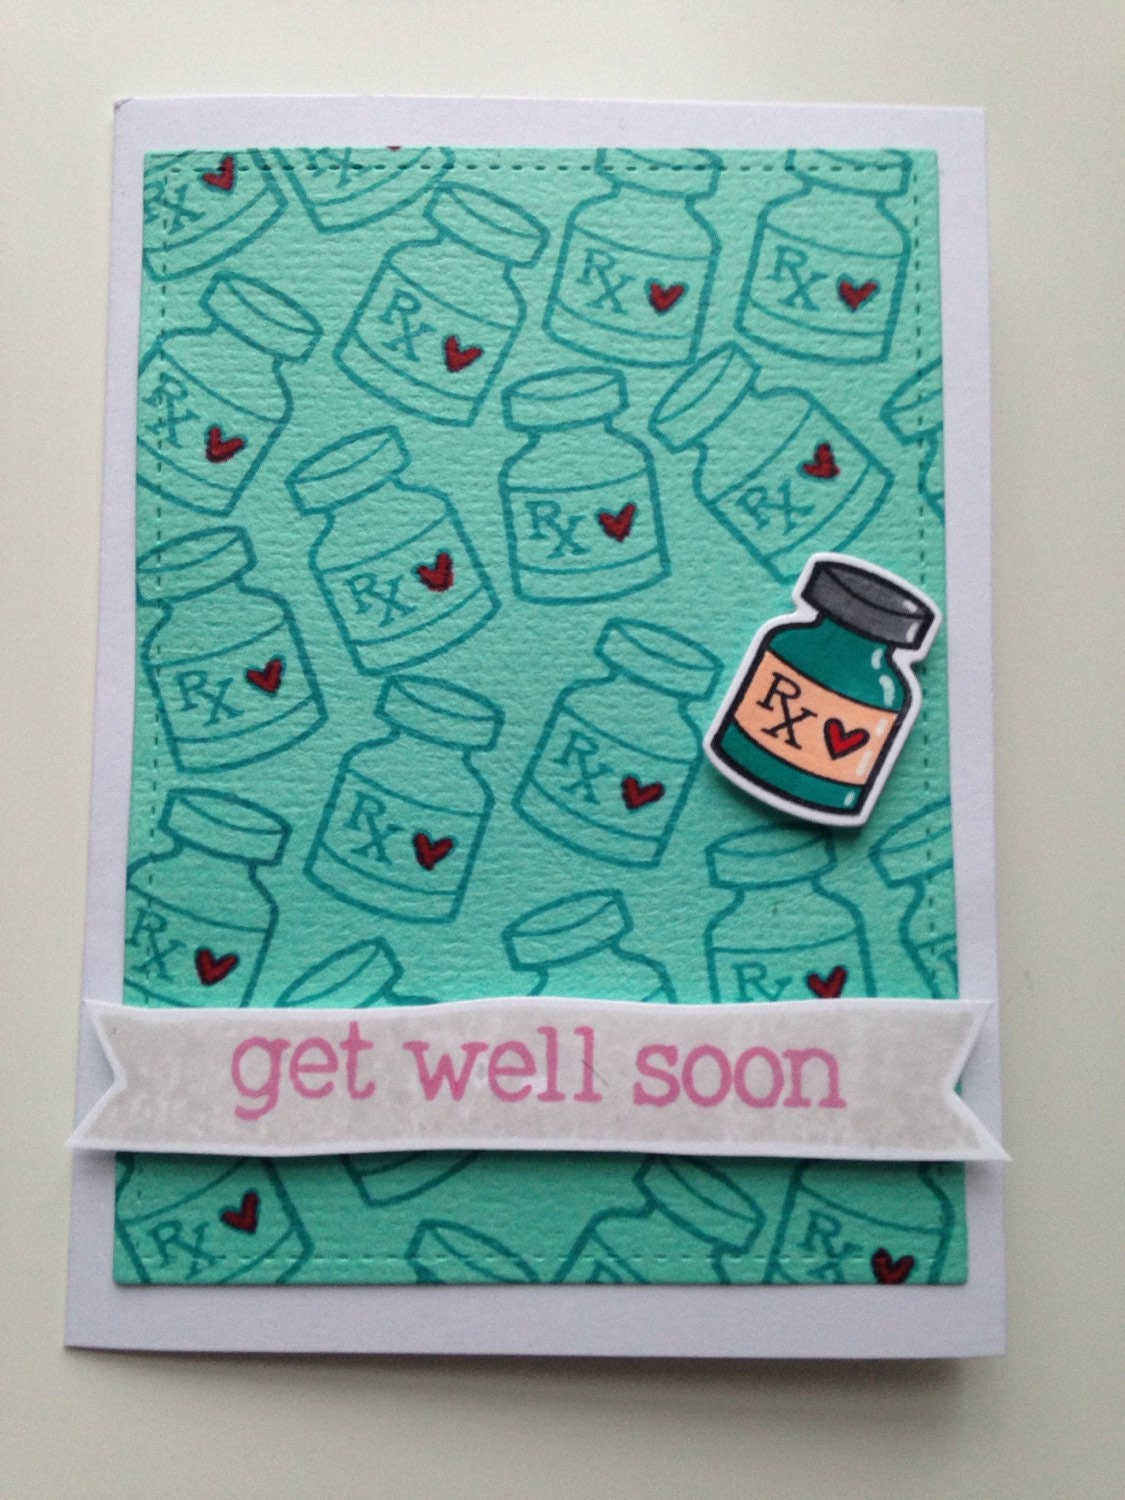 get well soon card handmade card ideal for cheering up sick